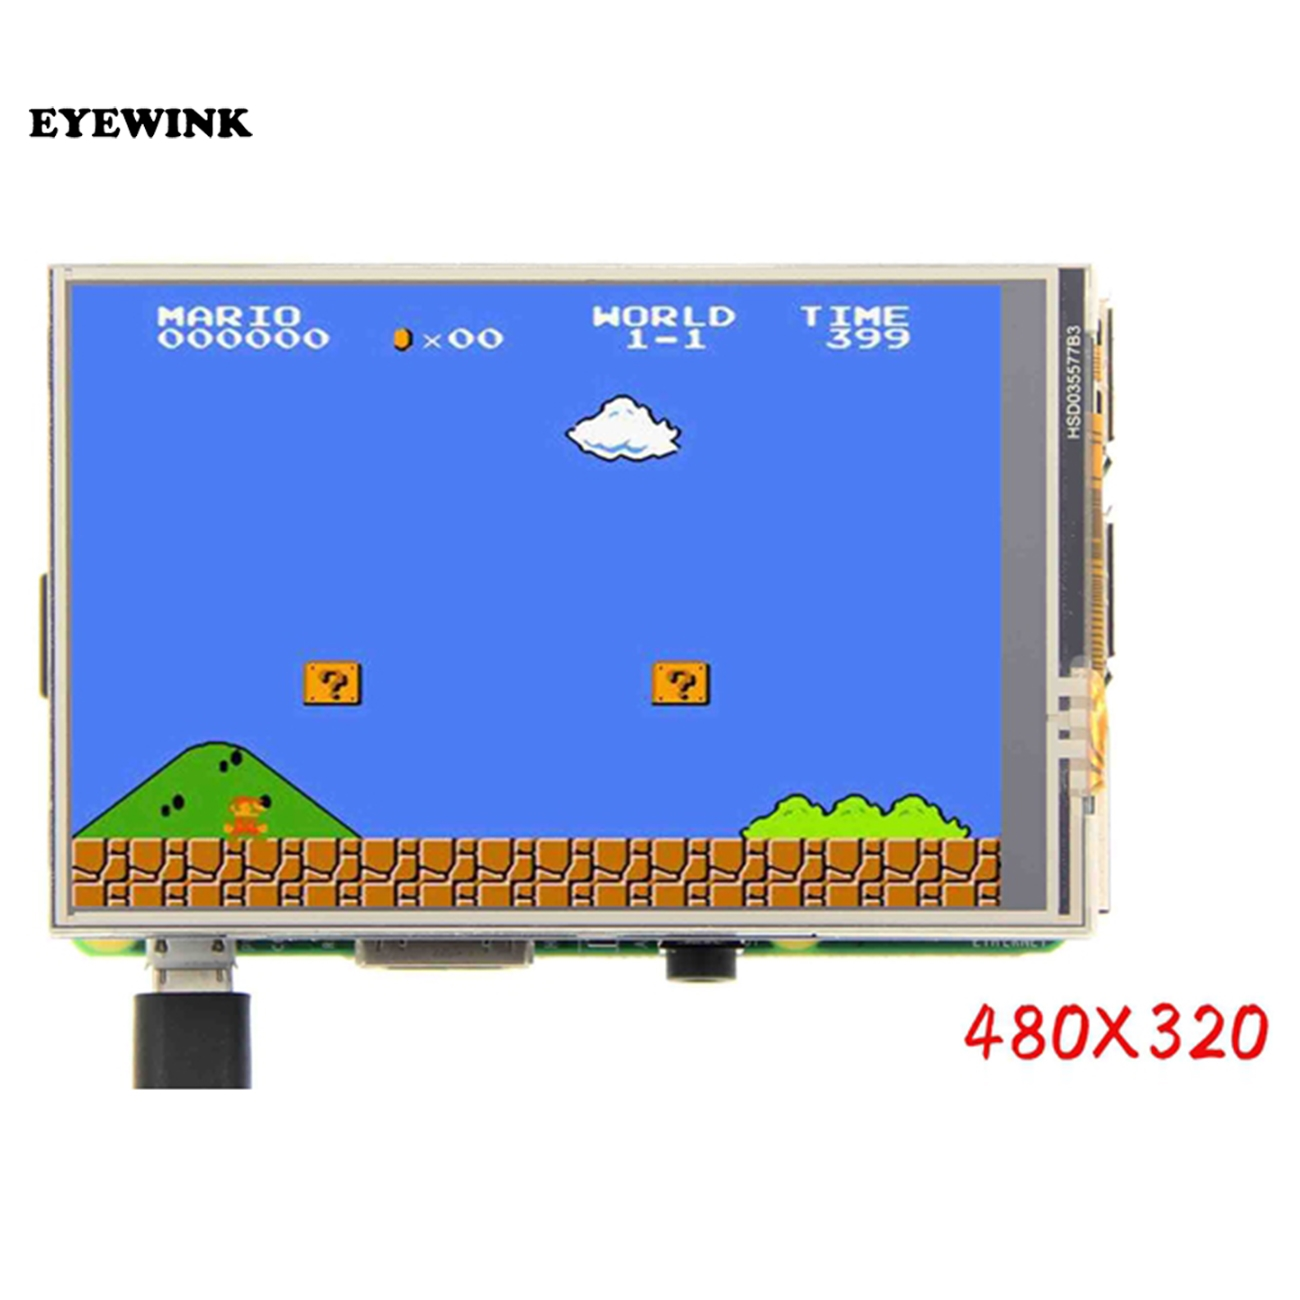 US $13 49 5% OFF MHS 3 5 inch For Raspberry Pi color TFT LCD screen  supports retropie games-in LCD Modules from Electronic Components &  Supplies on